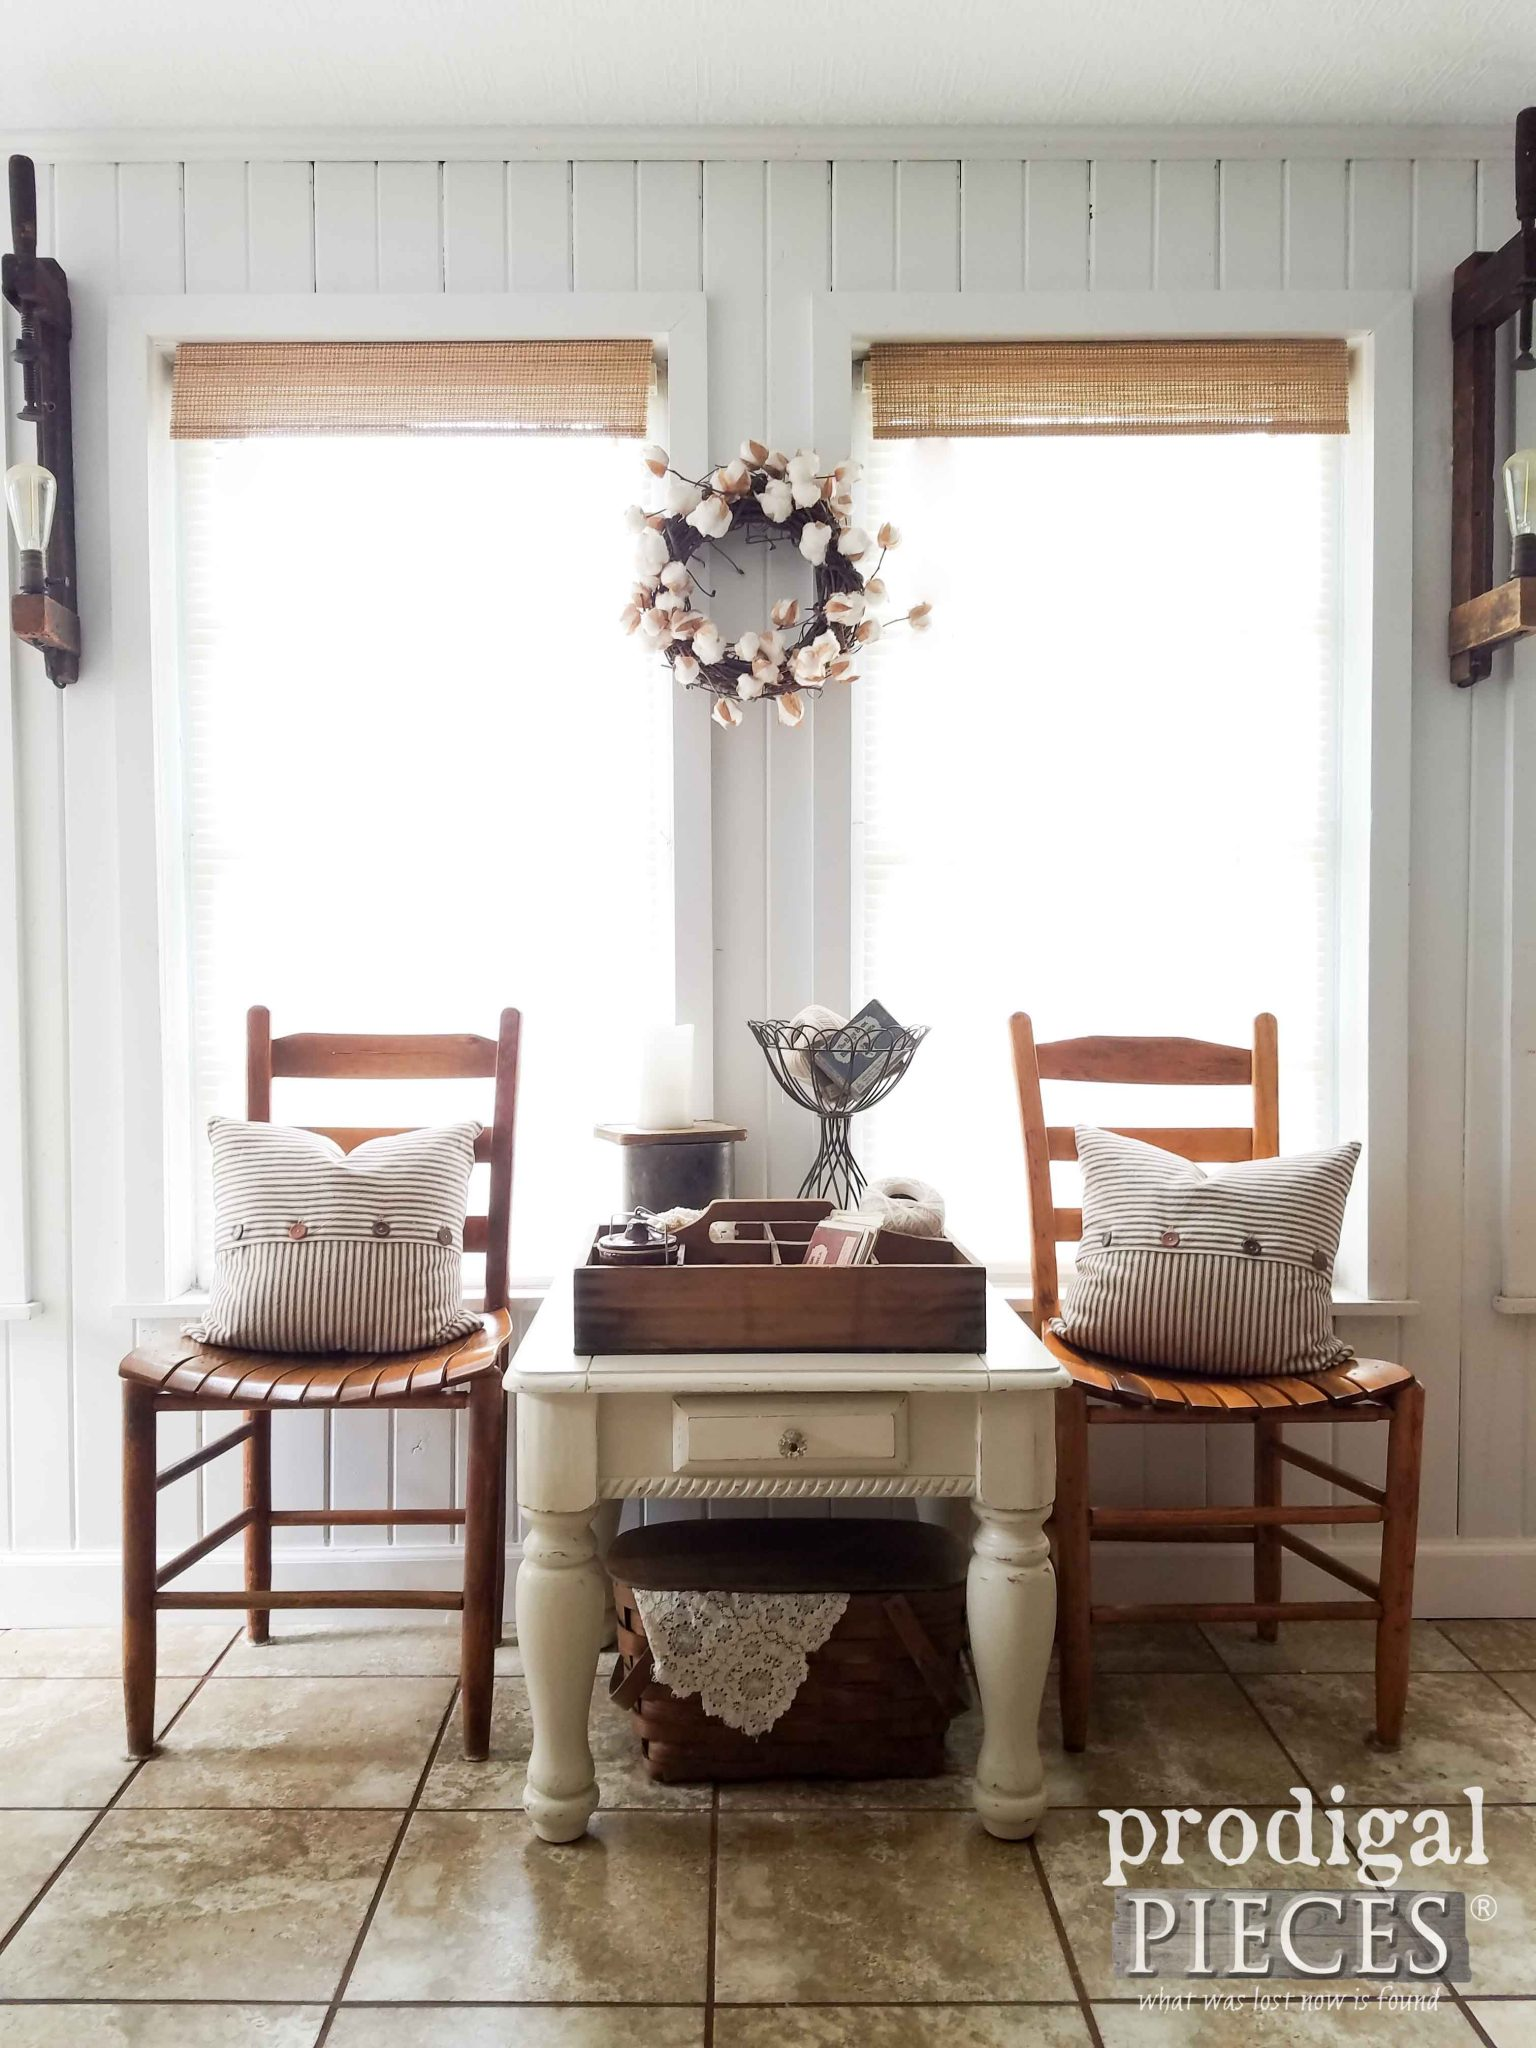 Farmhouse Style Vignette with Side Table Makeover by Prodigal Pieces | prodigalpieces.com